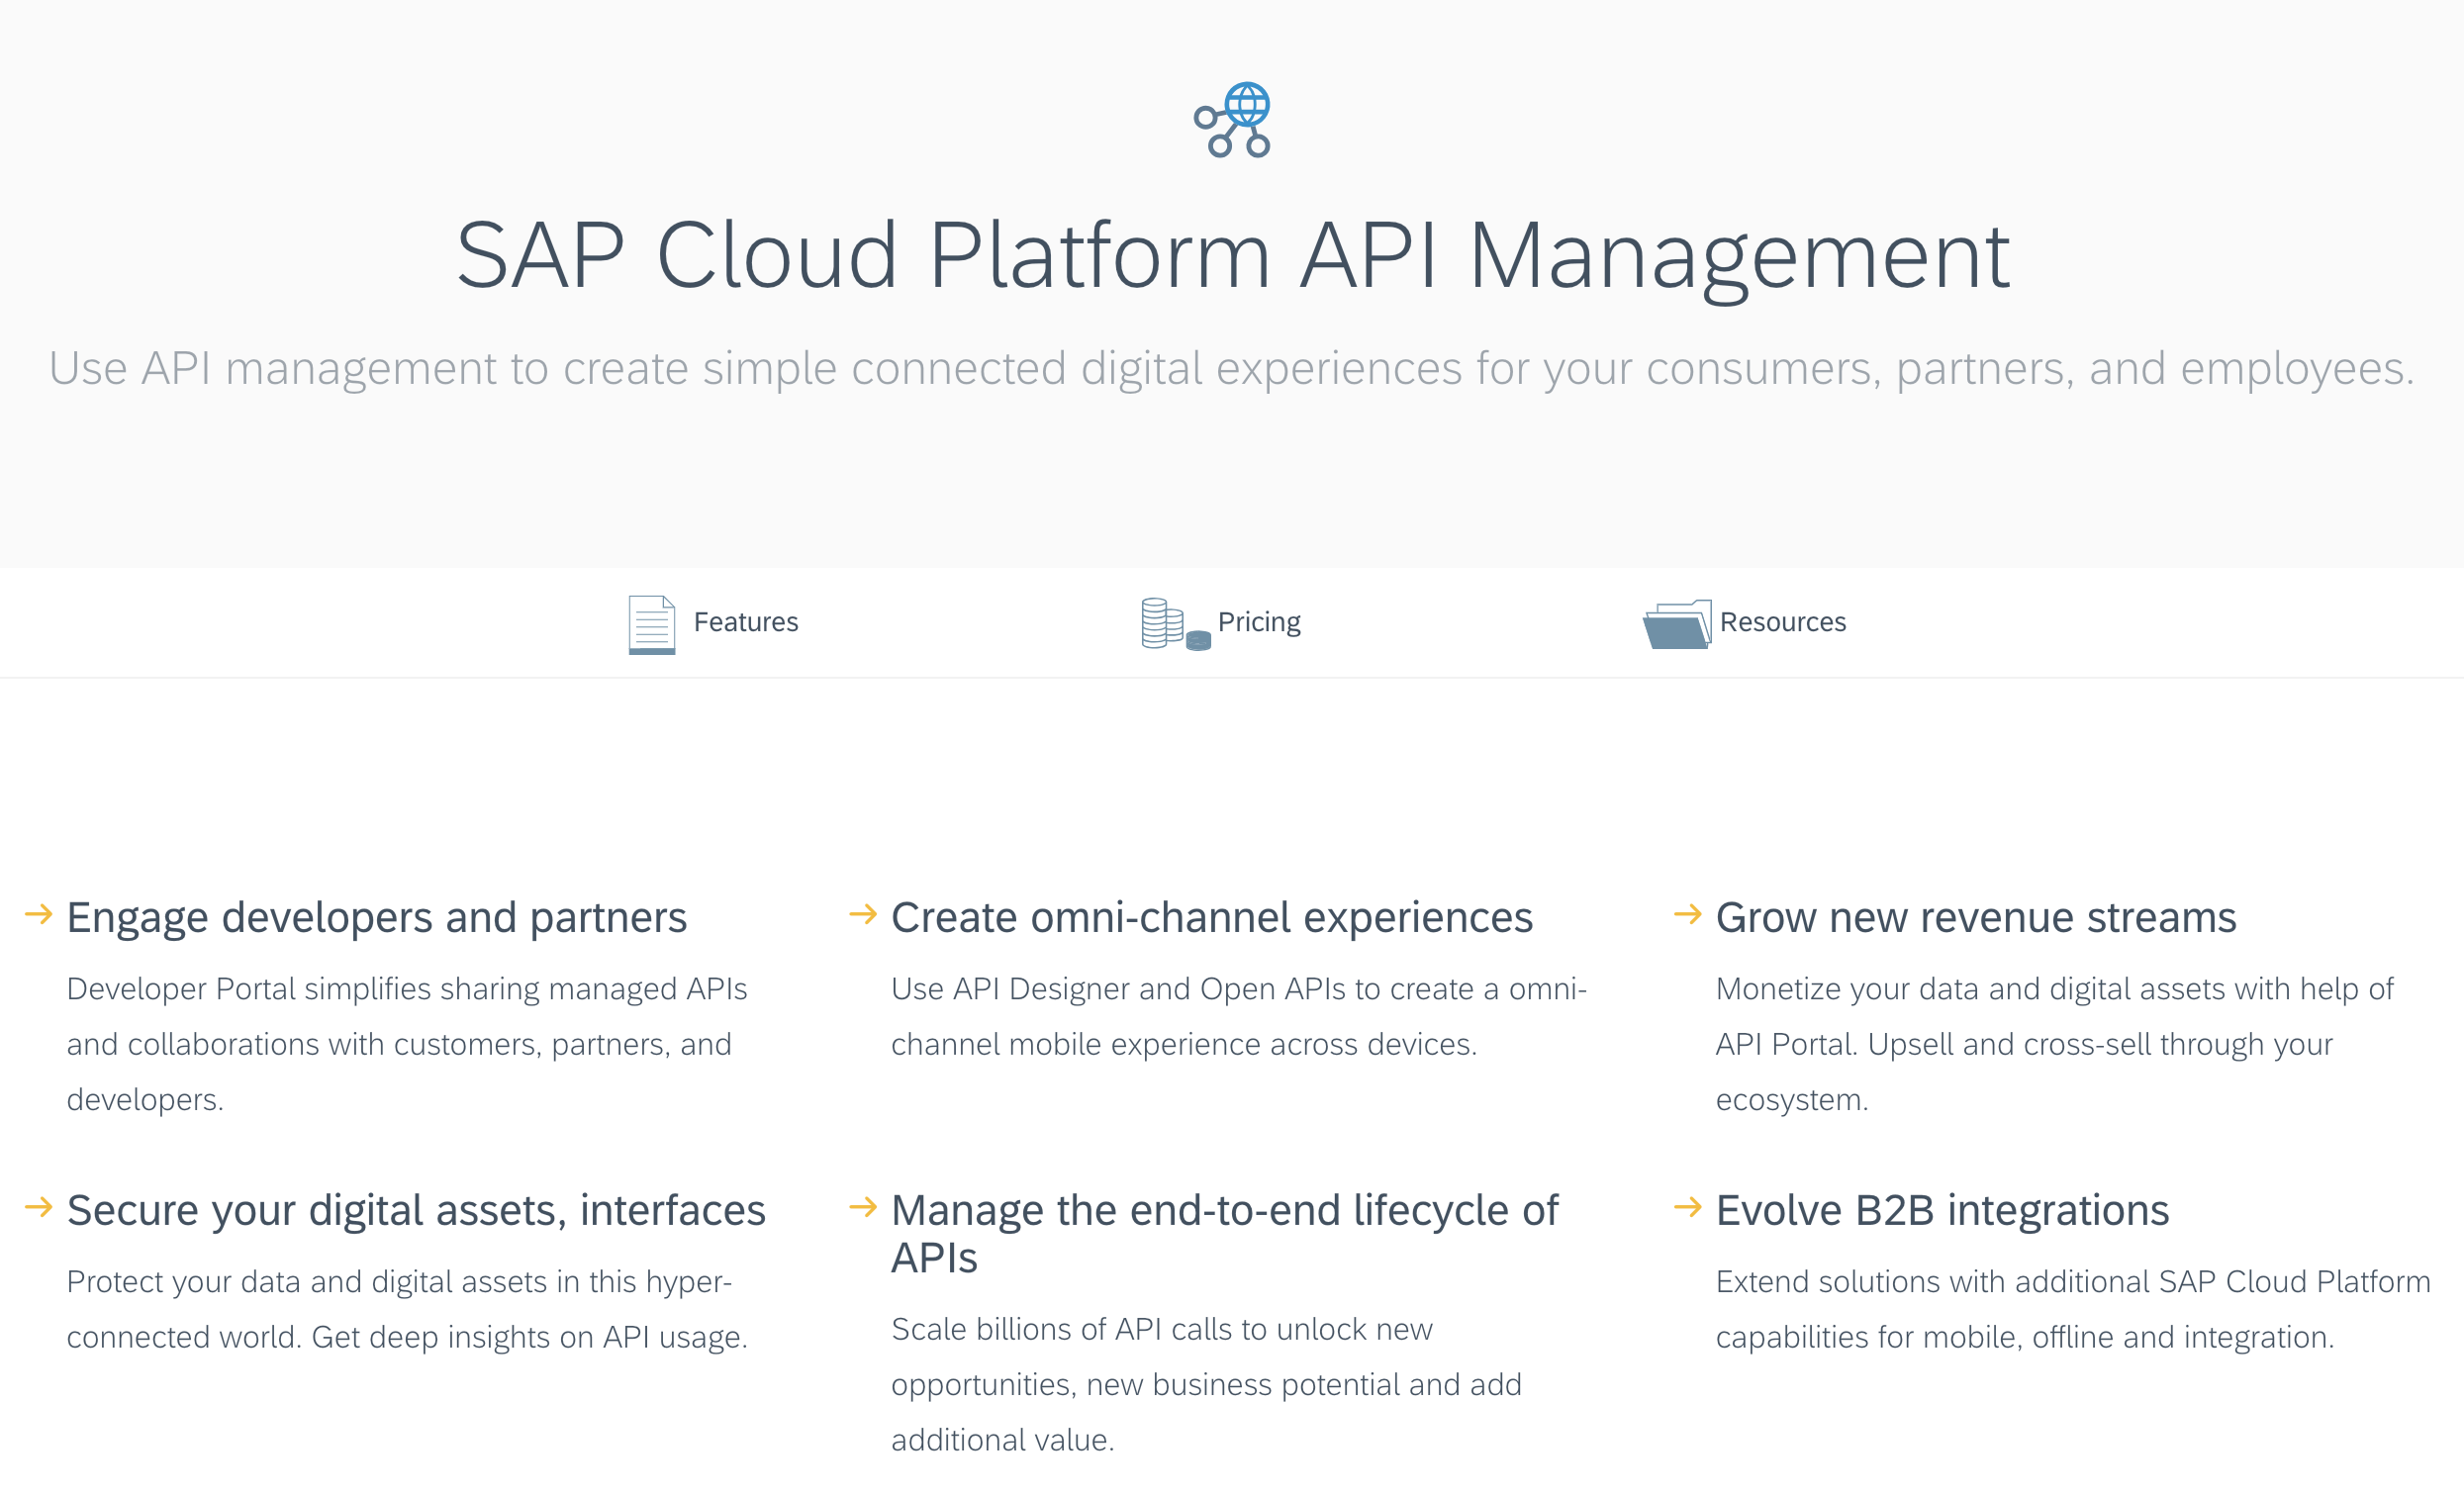 From API to App: Assistant tool generates mobile app